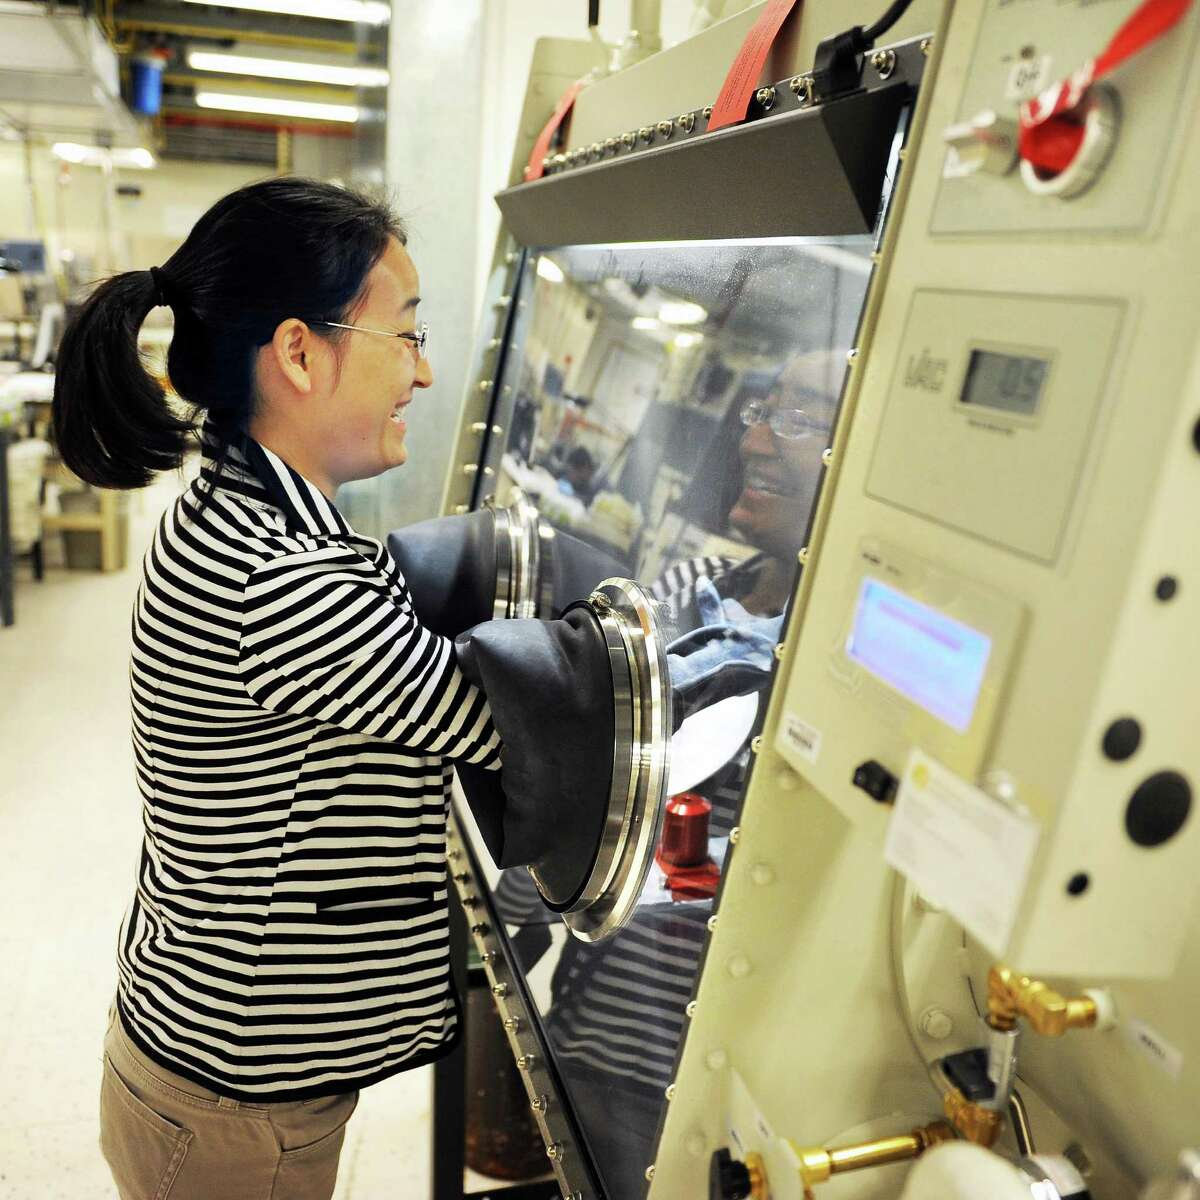 Research scientist Shasha Zhang works in the Glove Box, a controlled environment used for manufacturing BESS Tech's batteries in a SUNY Poly campus lab at CNSE Tuesday June 23, 2015 in Albany, NY. (John Carl D'Annibale / Times Union)